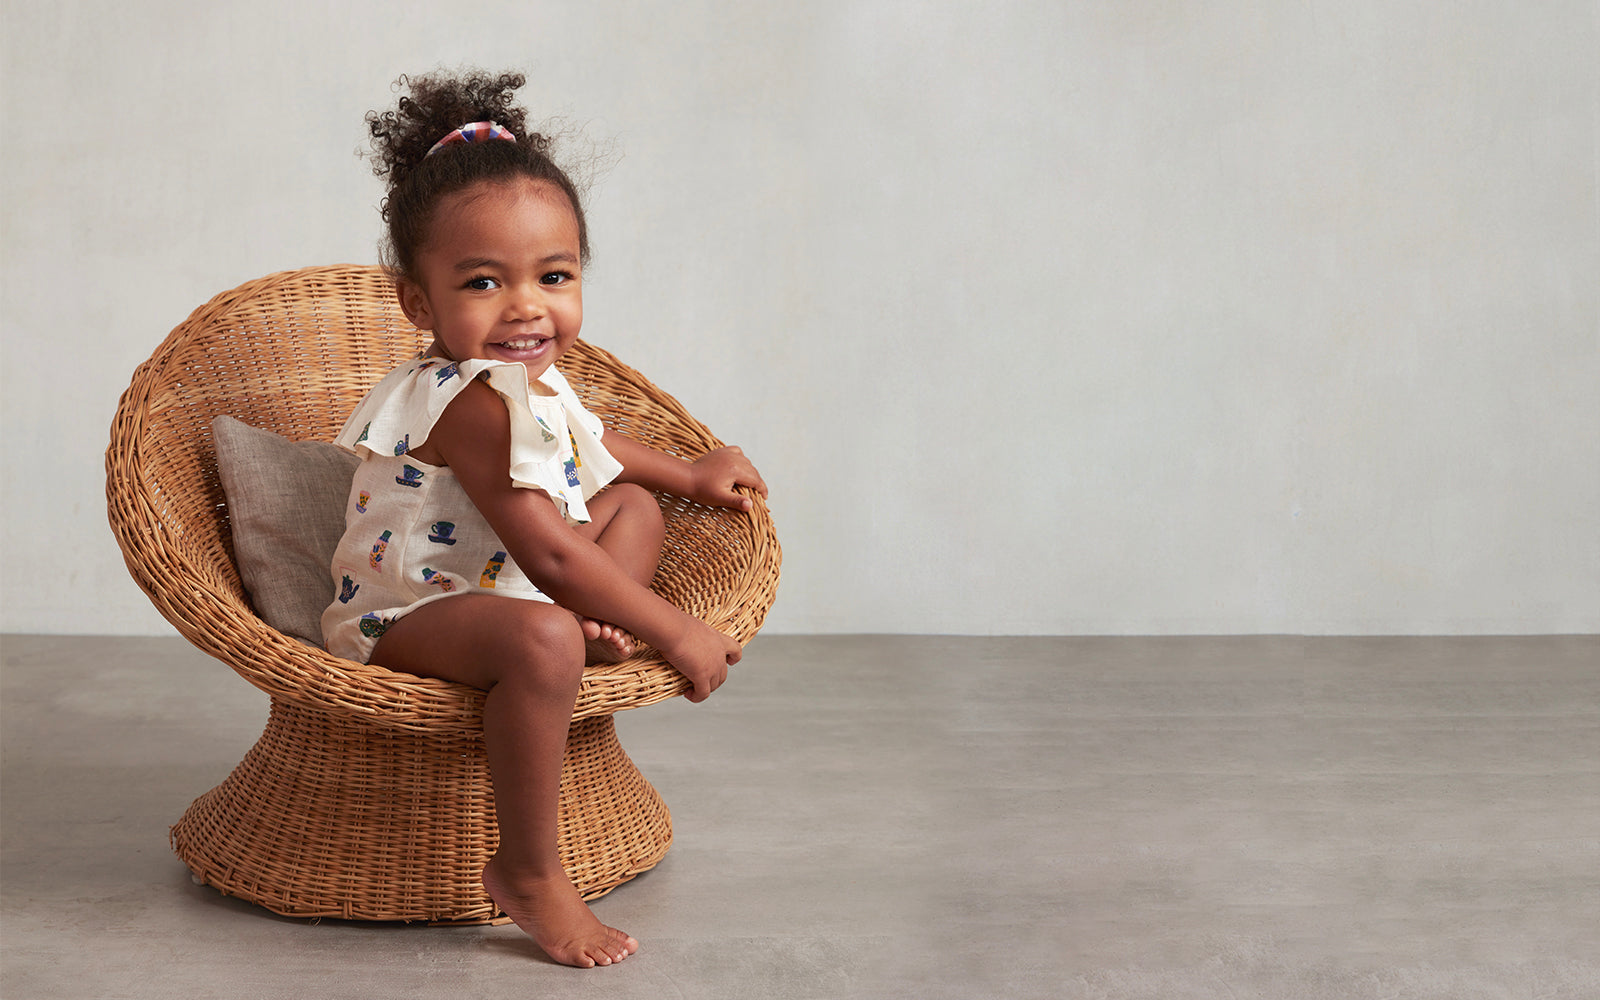 Toddler sitting in a rattan chair wearing a cute patterned romper.